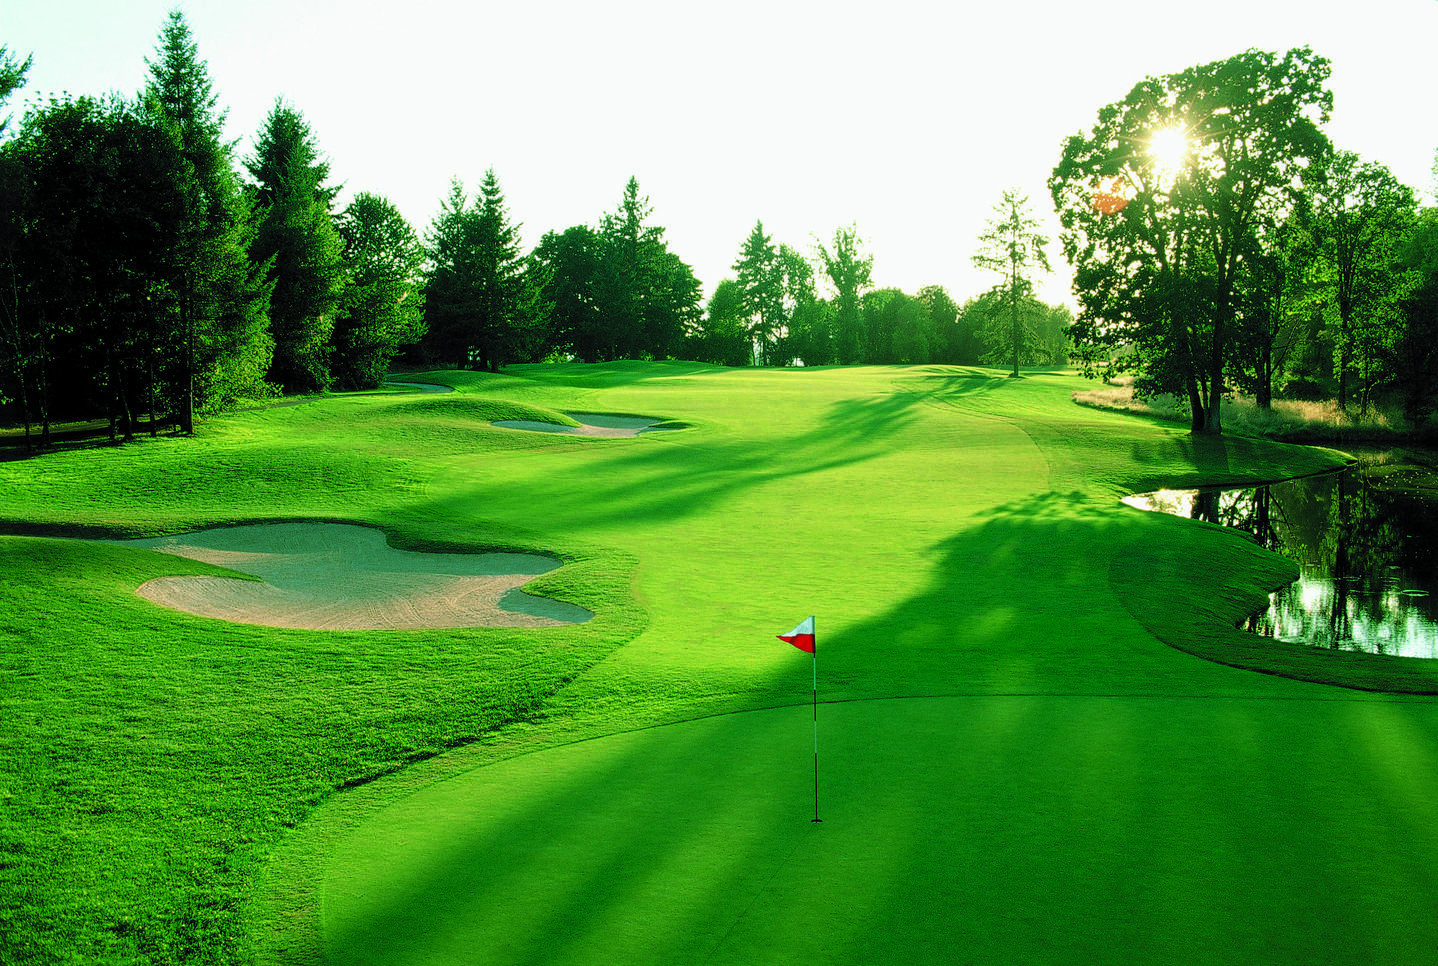 Golf Course Wallpapers Wallpaper Cave Golf Courses Golf Golf Photography